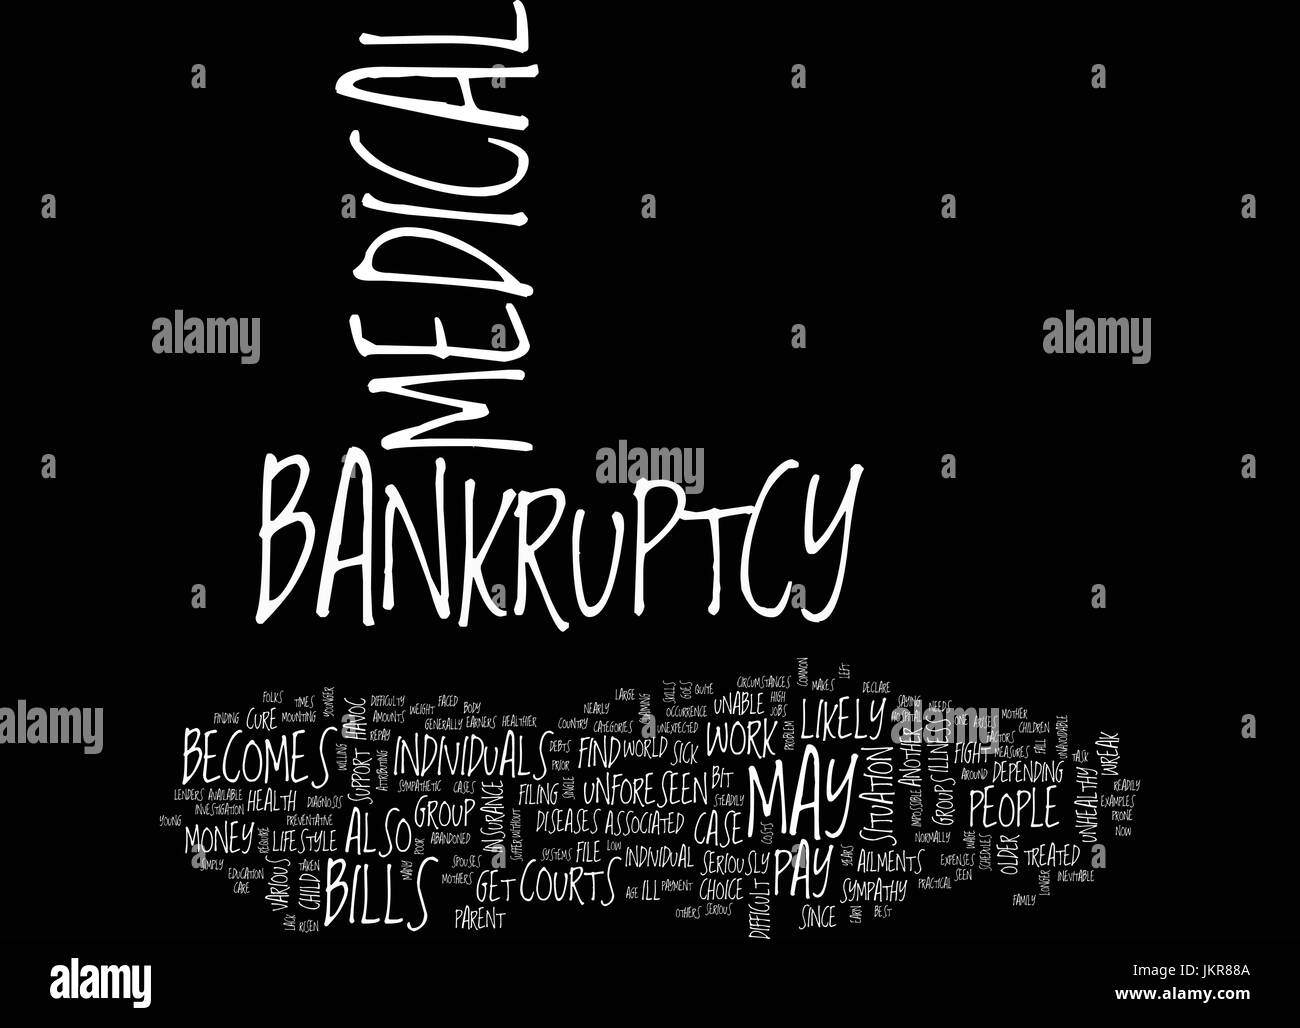 THE DIFFICULTY IN MEDICAL BANKRUPTCY Text Background Word Cloud Concept - Stock Image